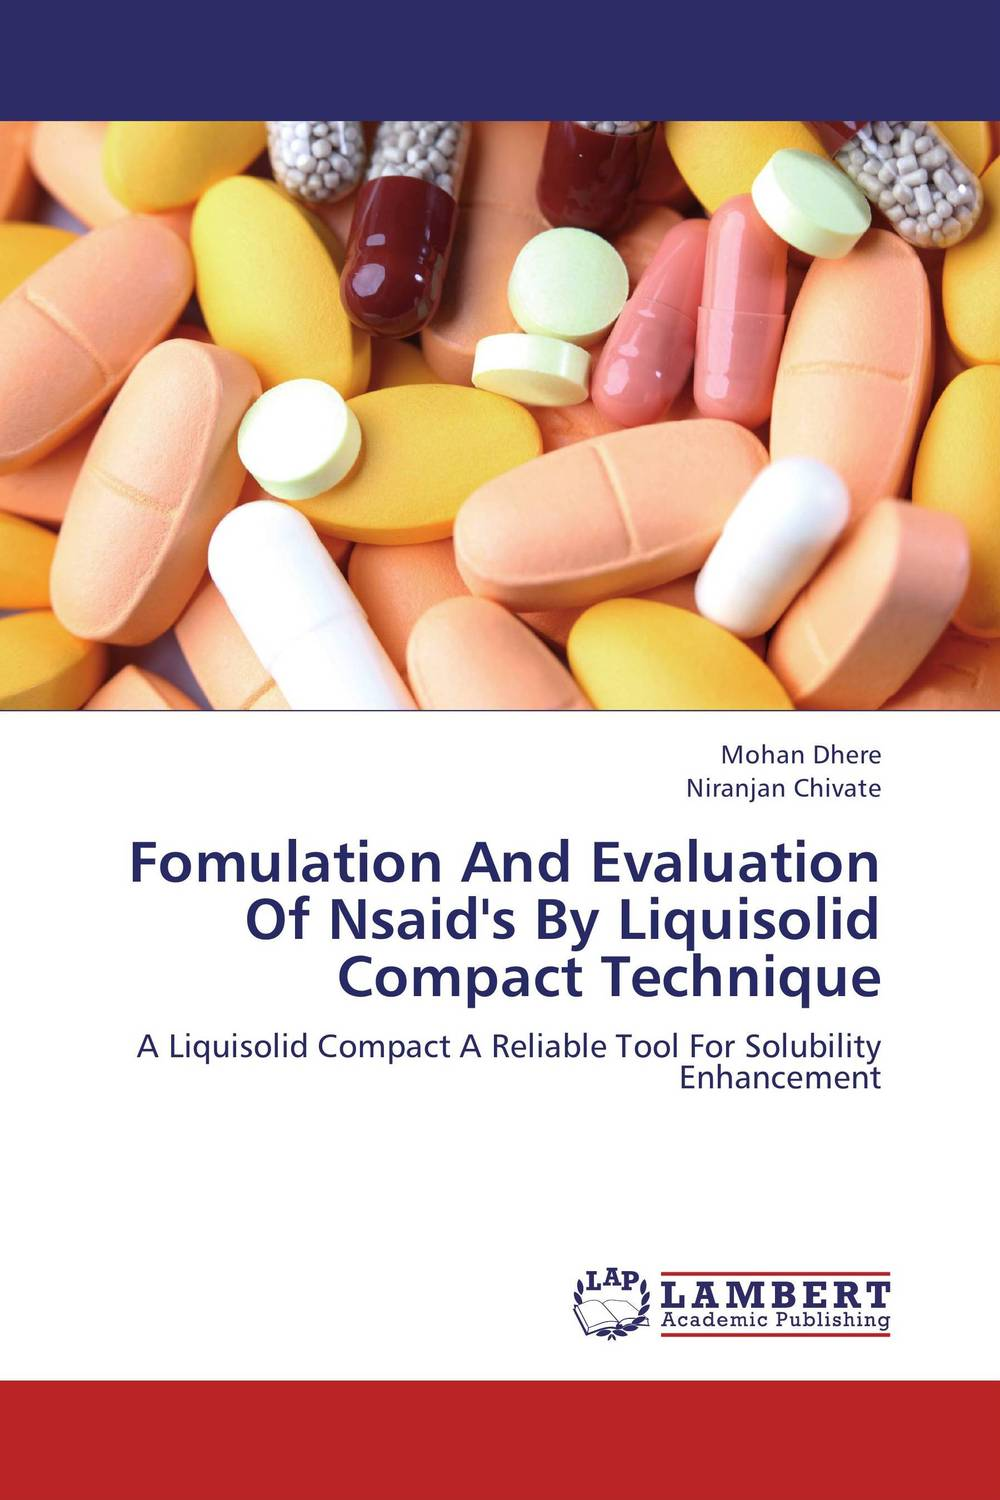 Fomulation And Evaluation Of Nsaid's By Liquisolid Compact Technique evaluation of carbon capture and storage as a best available technique